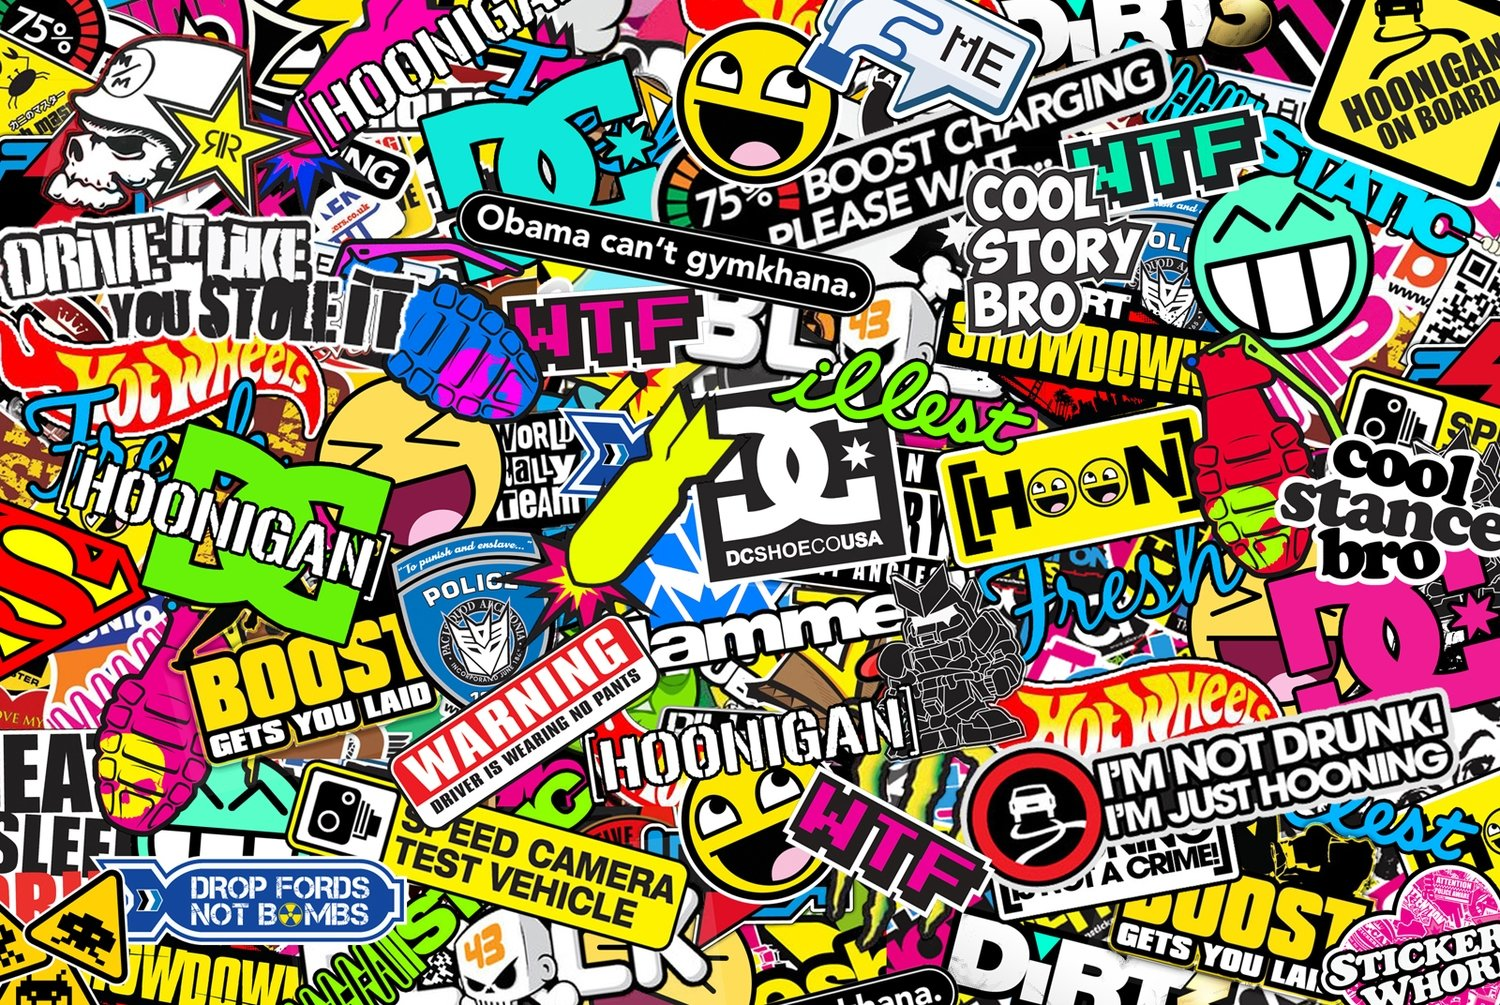 STICKERS! Any image or logo digitally printed. Starting from $10: